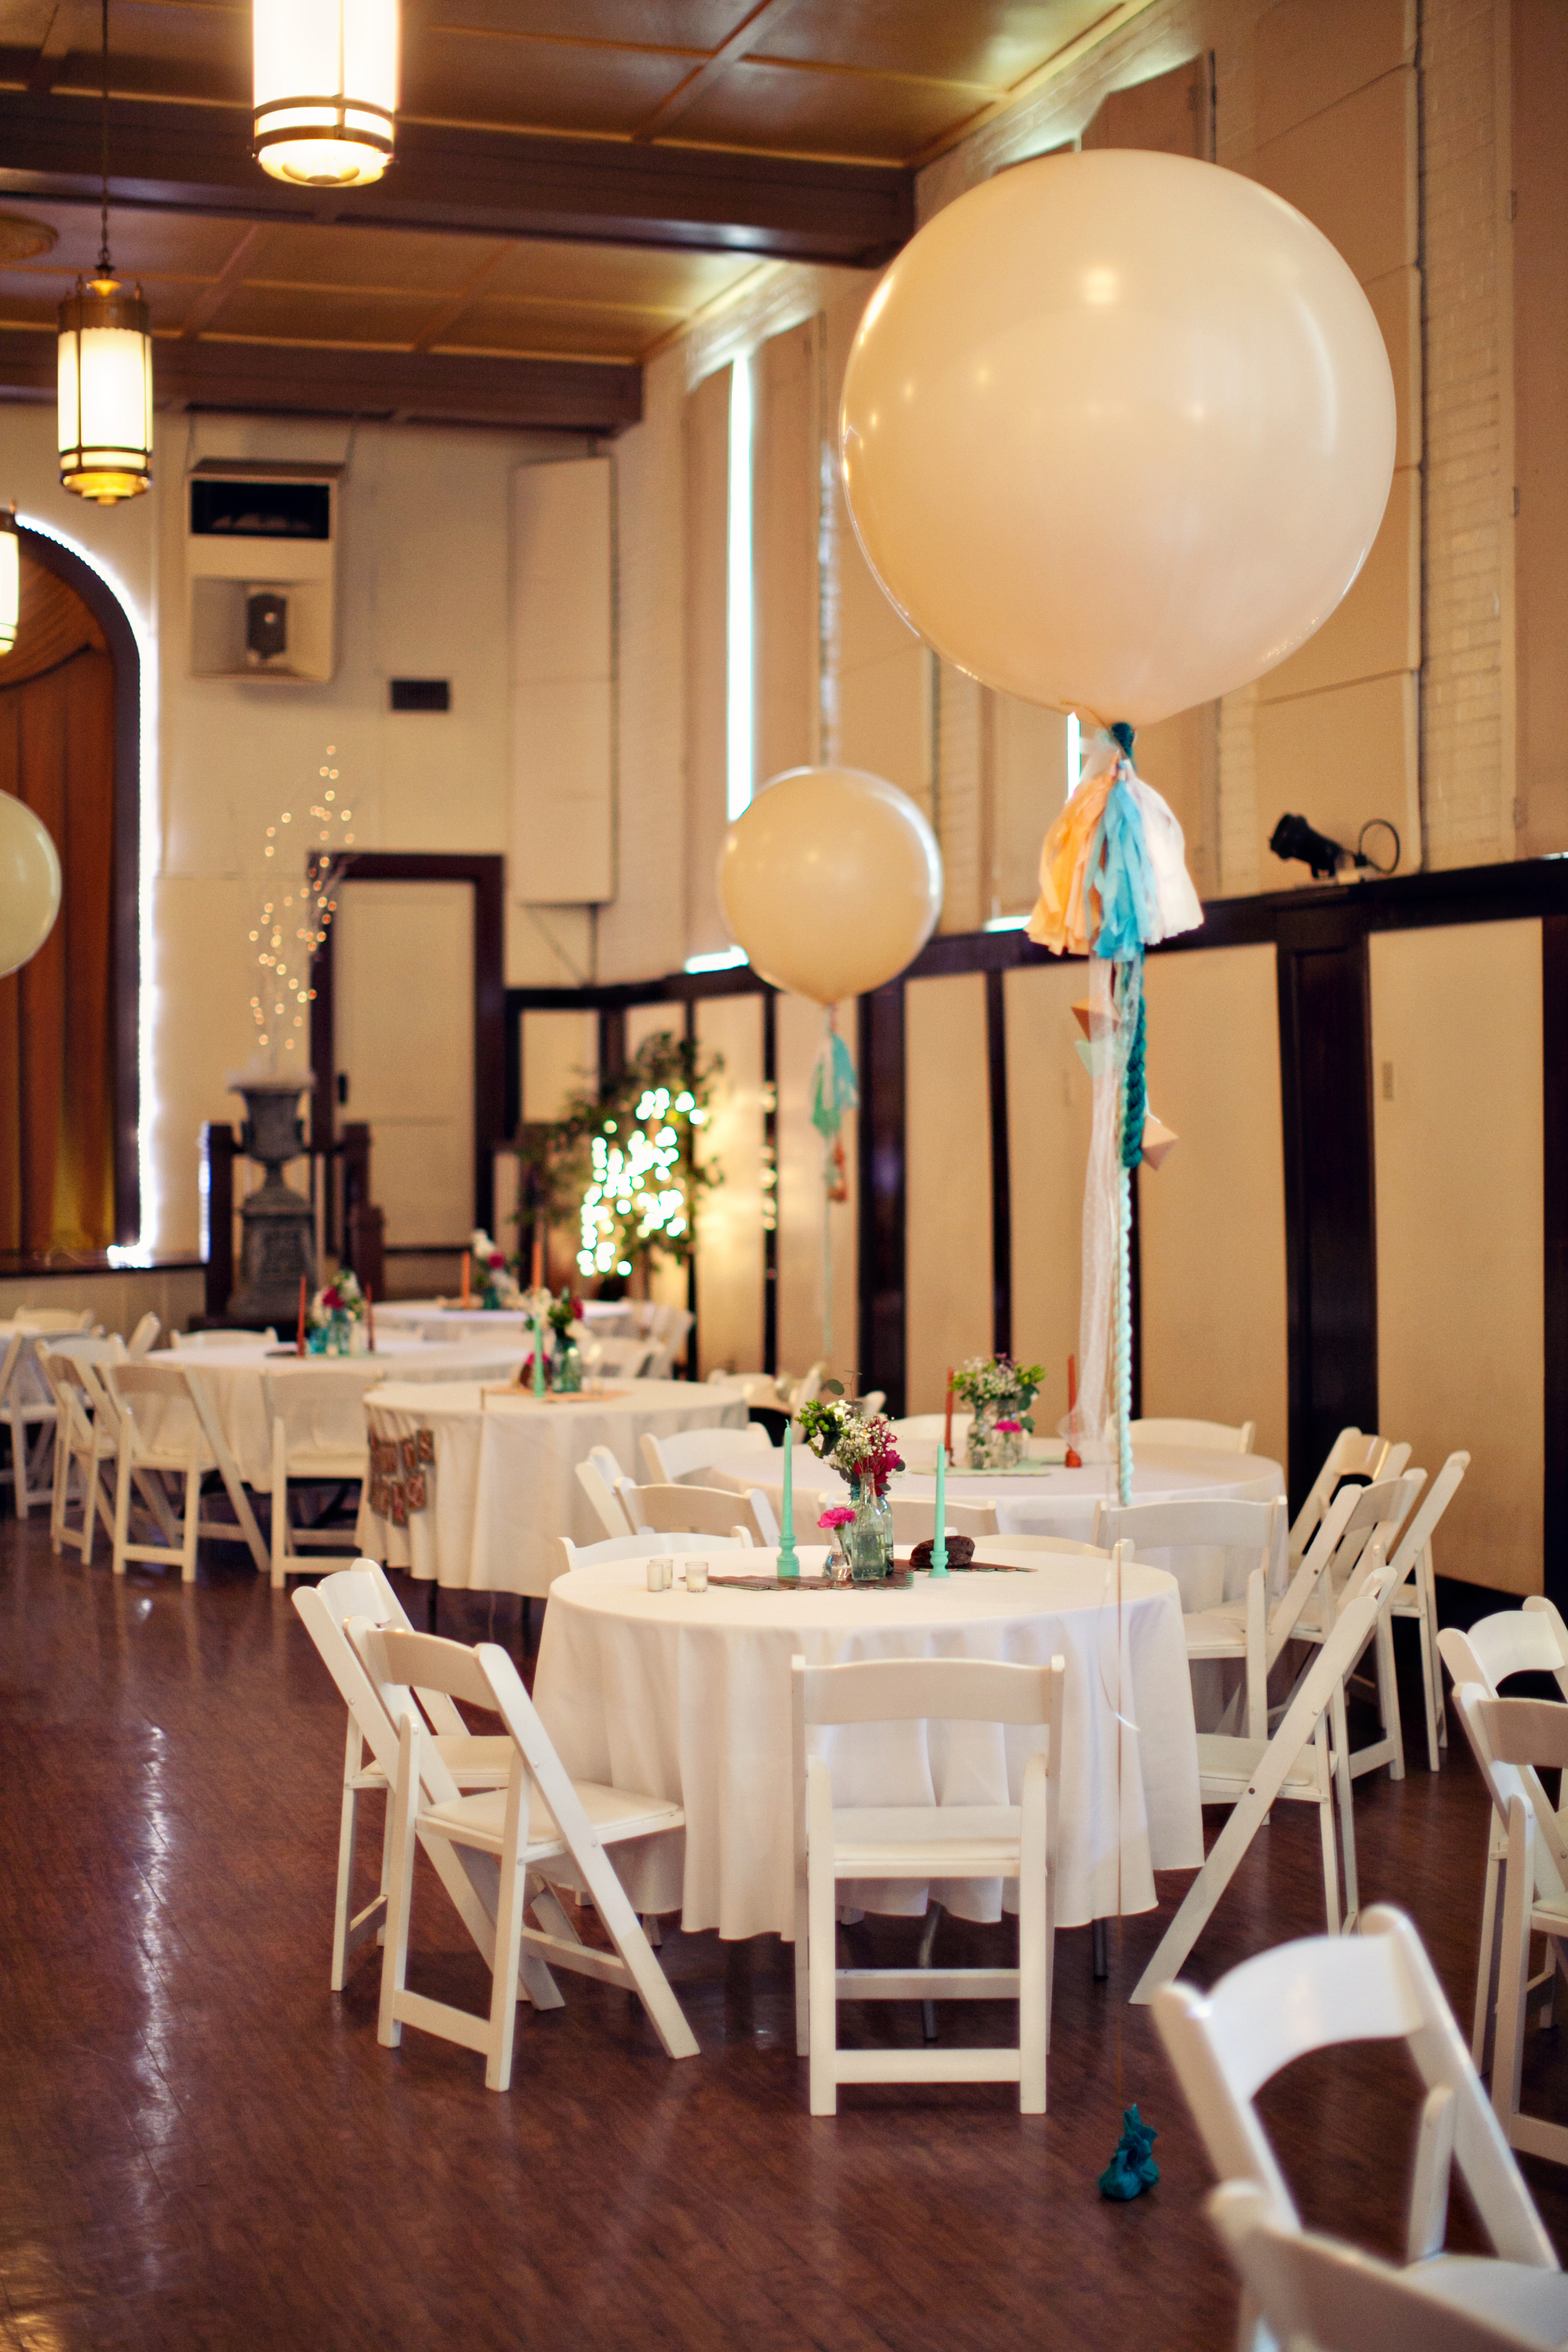 Decorations for Indoor Wedding The Rose Chapel | thegreatgoodness.com